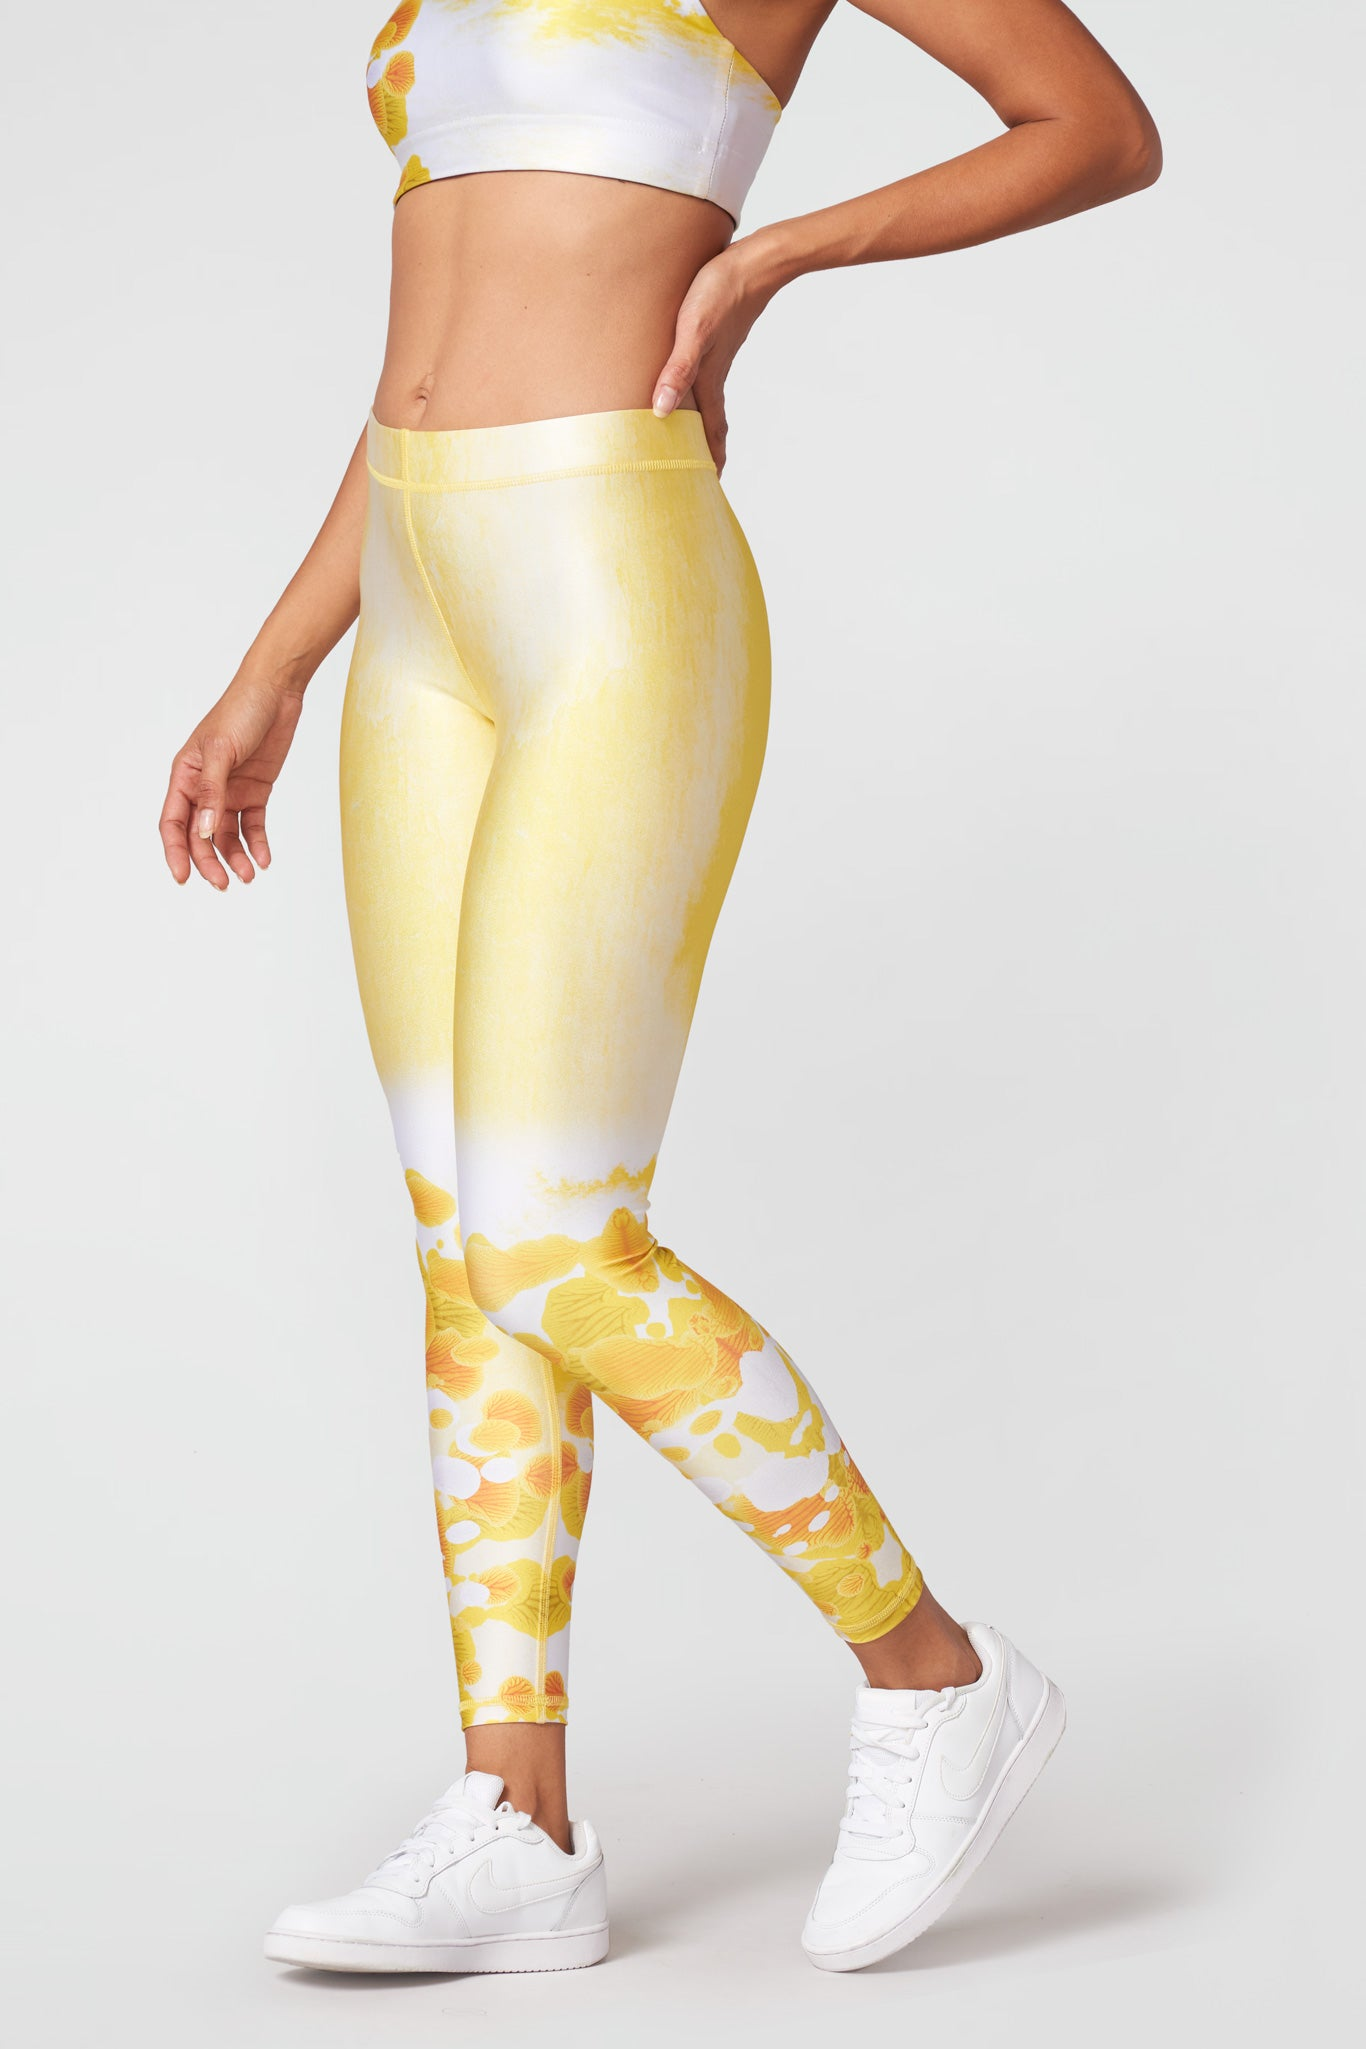 Sunshine Glow Slim Band Leggings